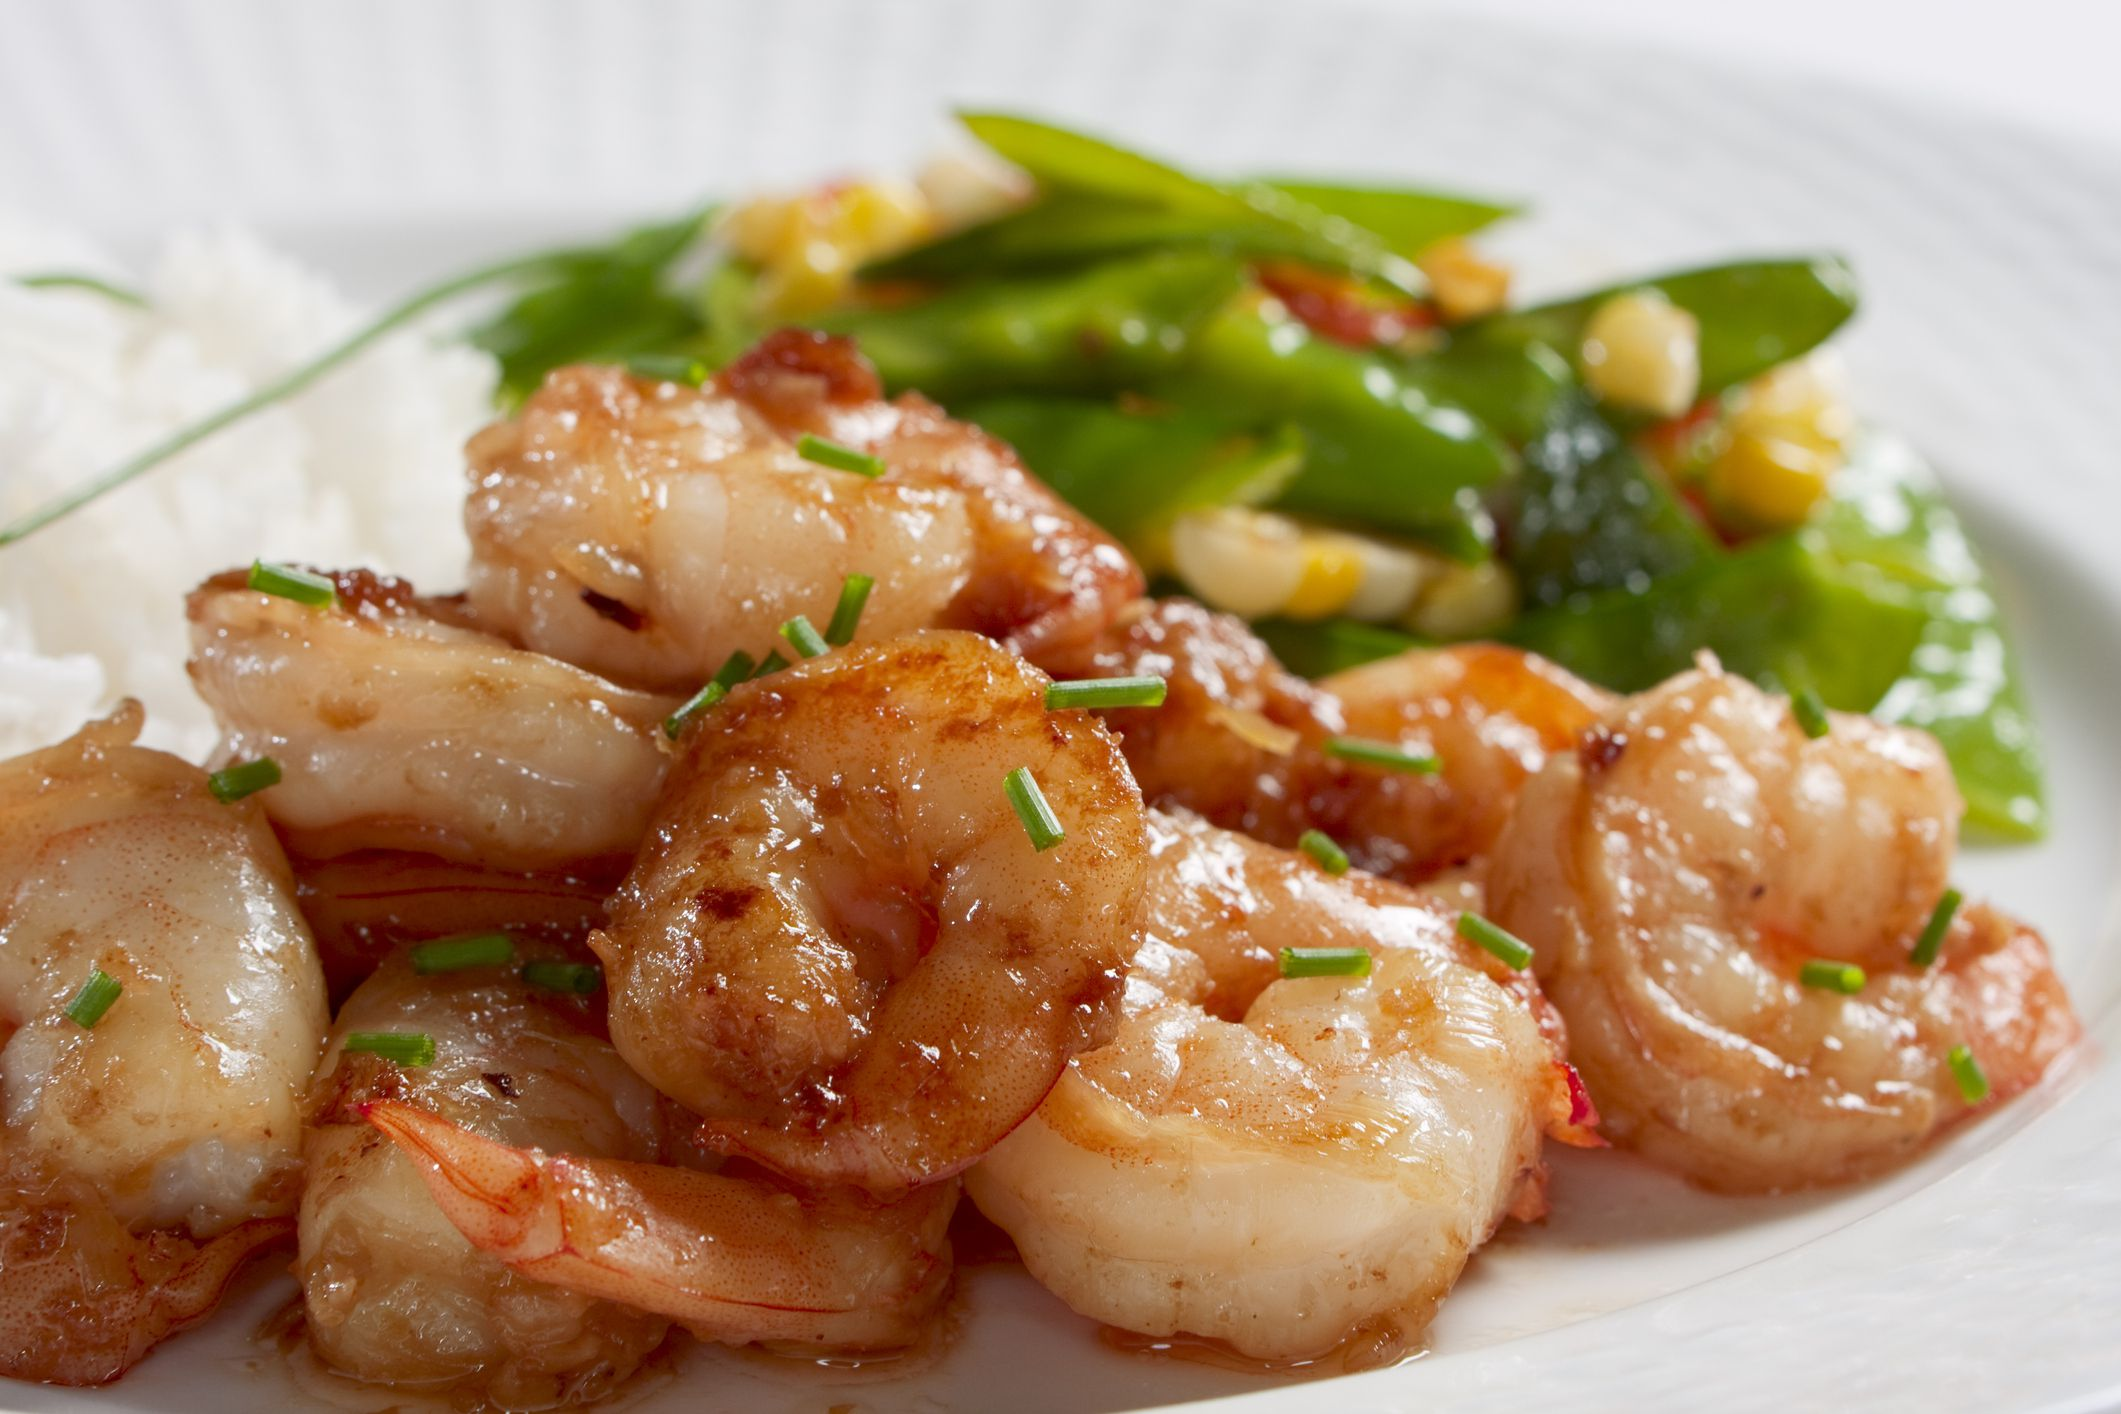 Try This Easy Vietnamese-Style Stir-Fried Sweet Shrimp Recipe